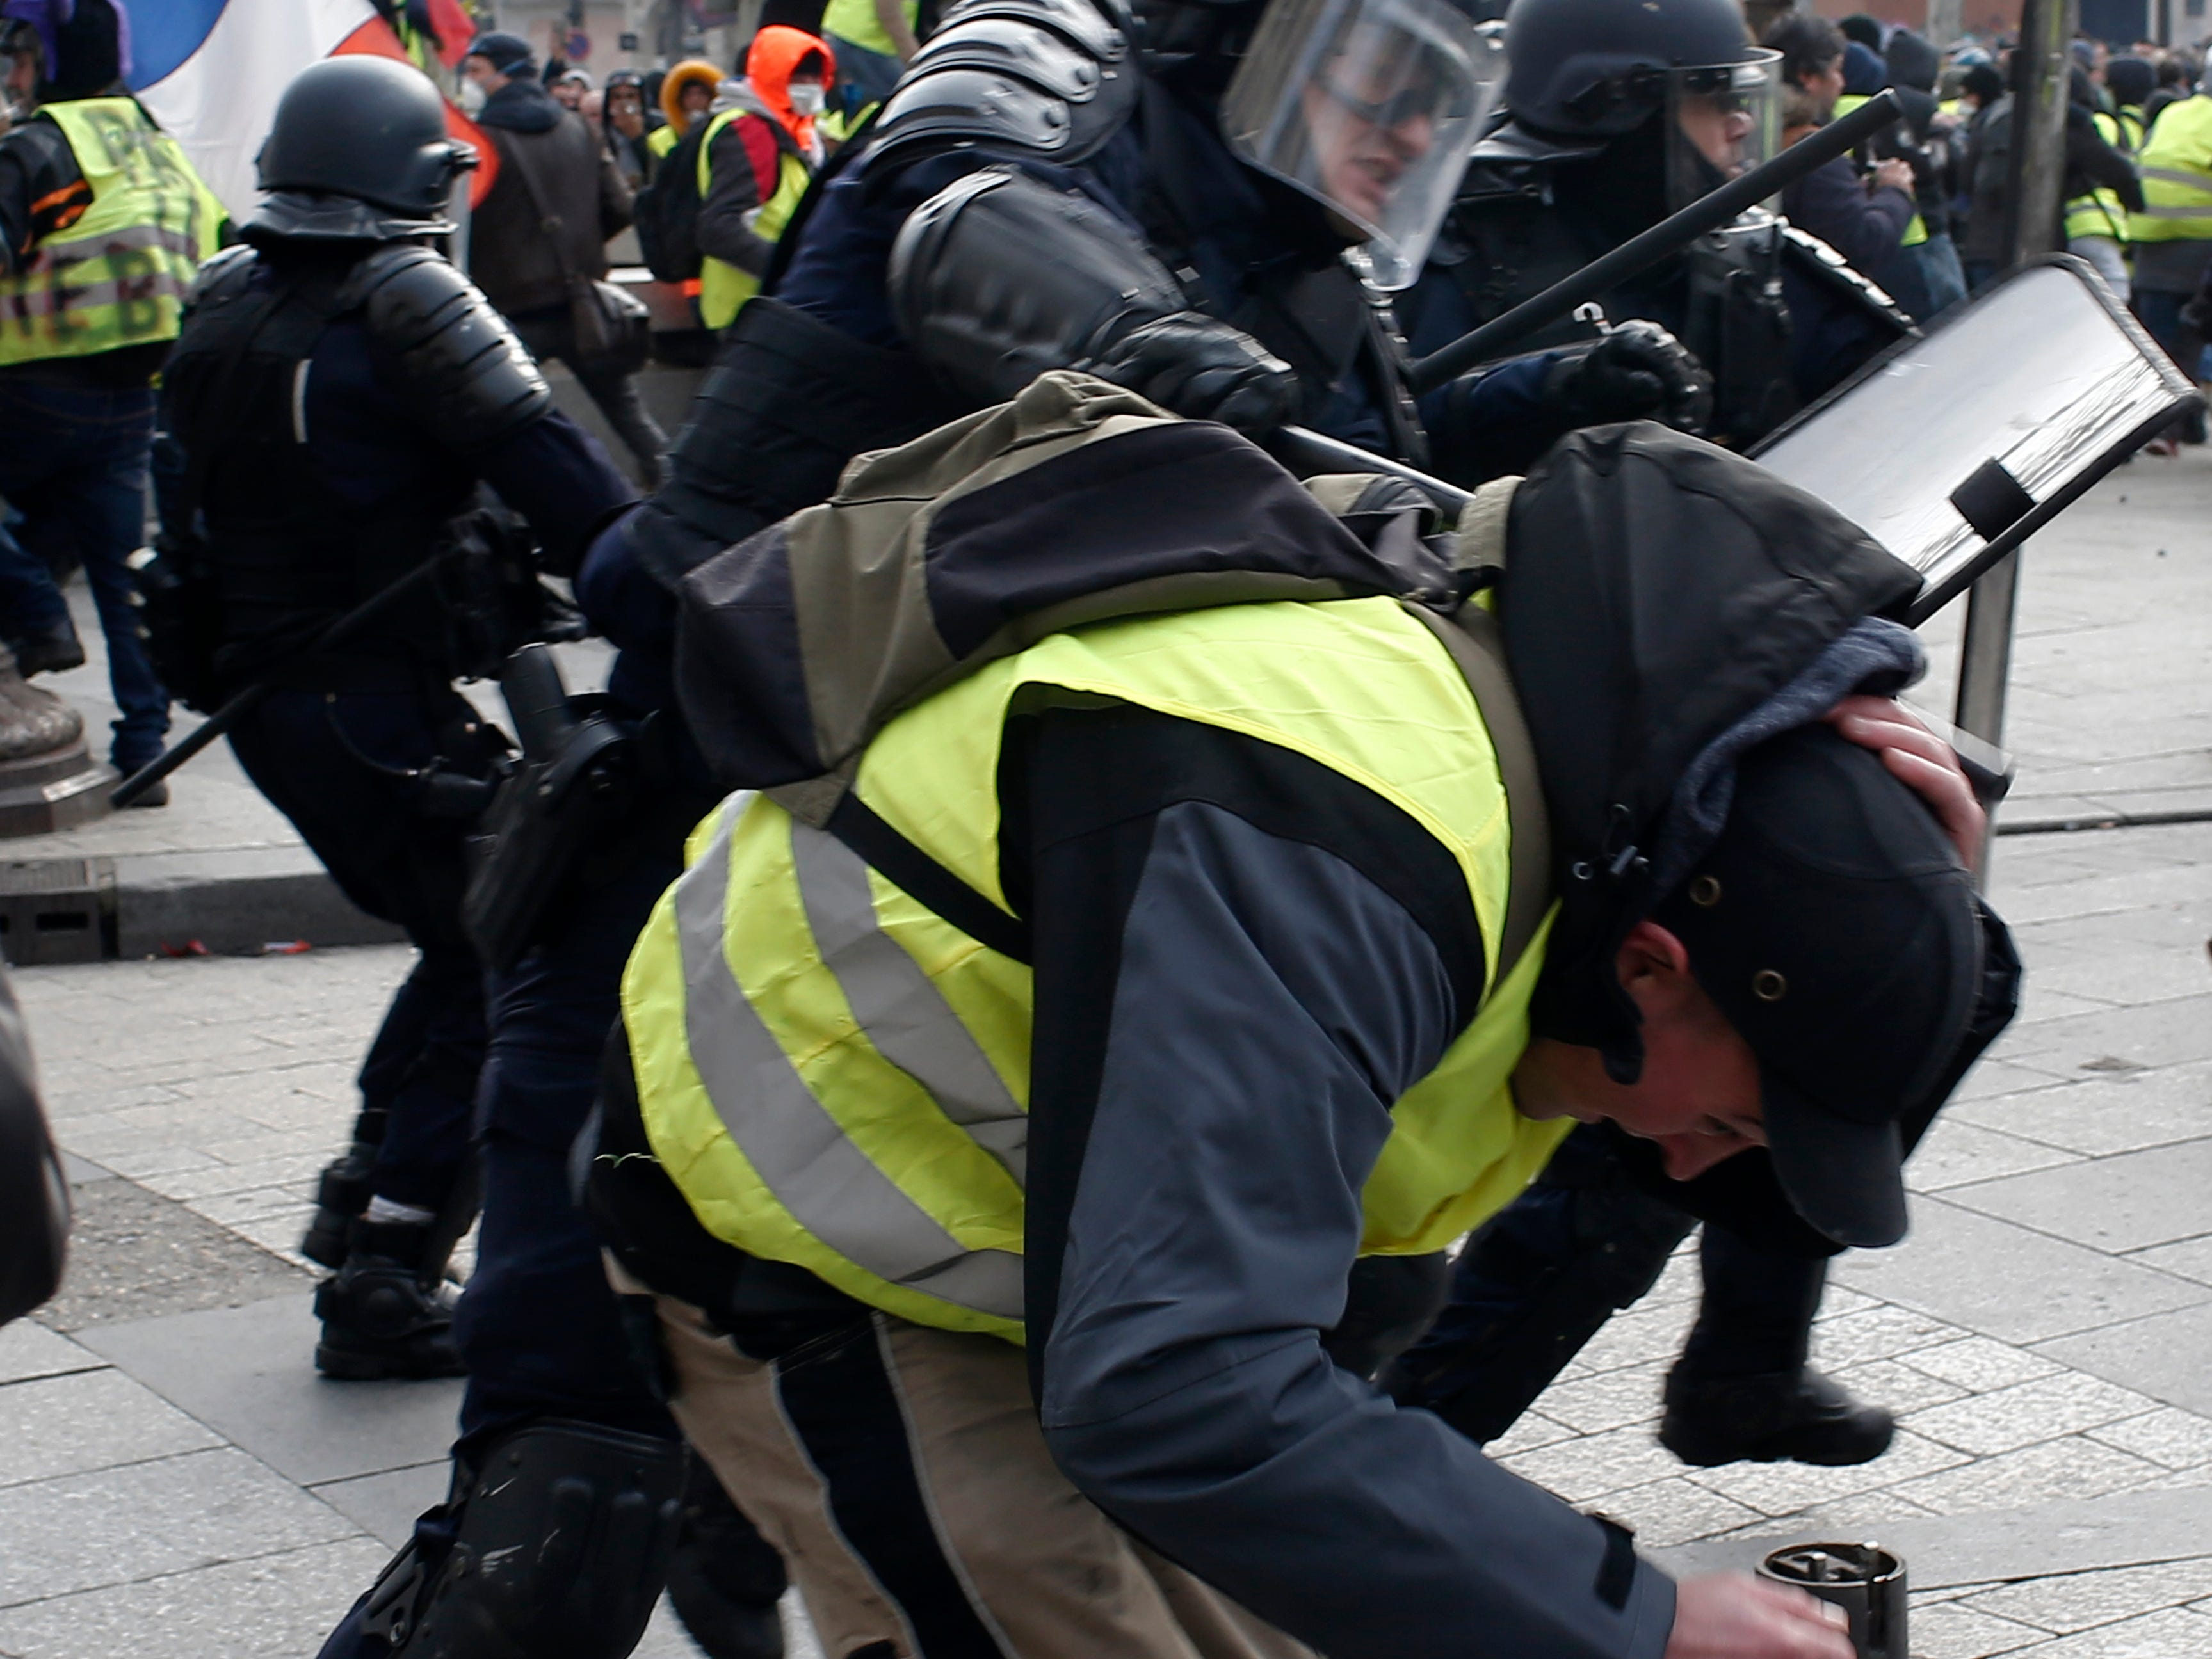 A riot police officer beats a demonstrator on the Champs-Elysees avenue Saturday, Dec. 8, 2018, in Paris. Crowds of yellow-vested protesters angry at President Emmanuel Macron and France's high taxes tried to converge on the presidential palace Saturday, some scuffling with police firing tear gas, amid exceptional security measures aimed at preventing a repeat of last week's rioting.